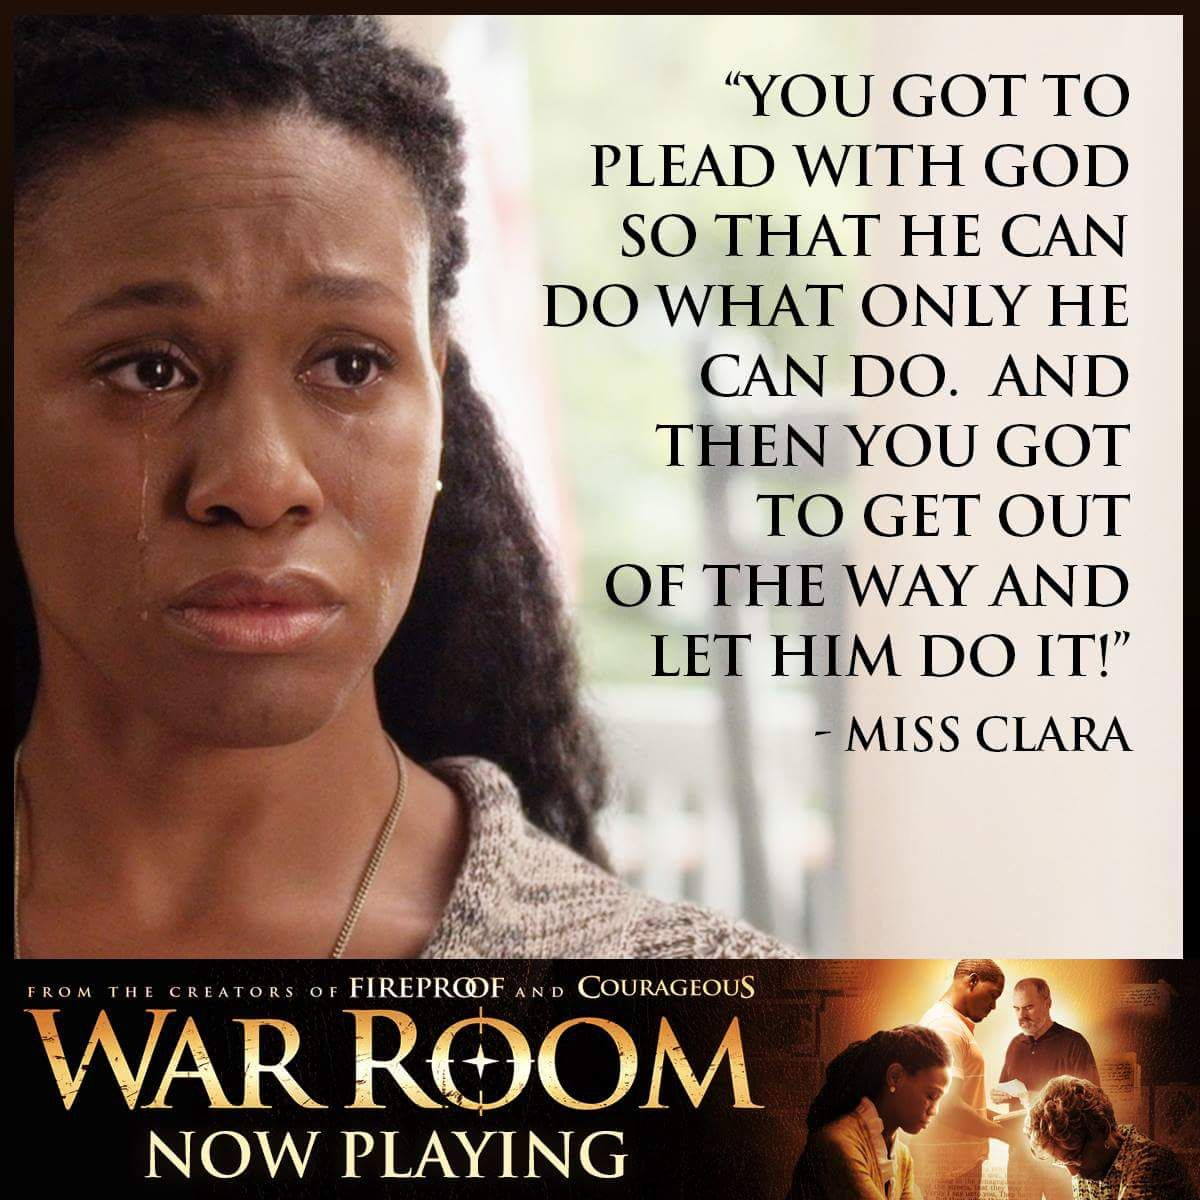 War room  WAR ROOM BIBLE  Prayer room Quotes about god